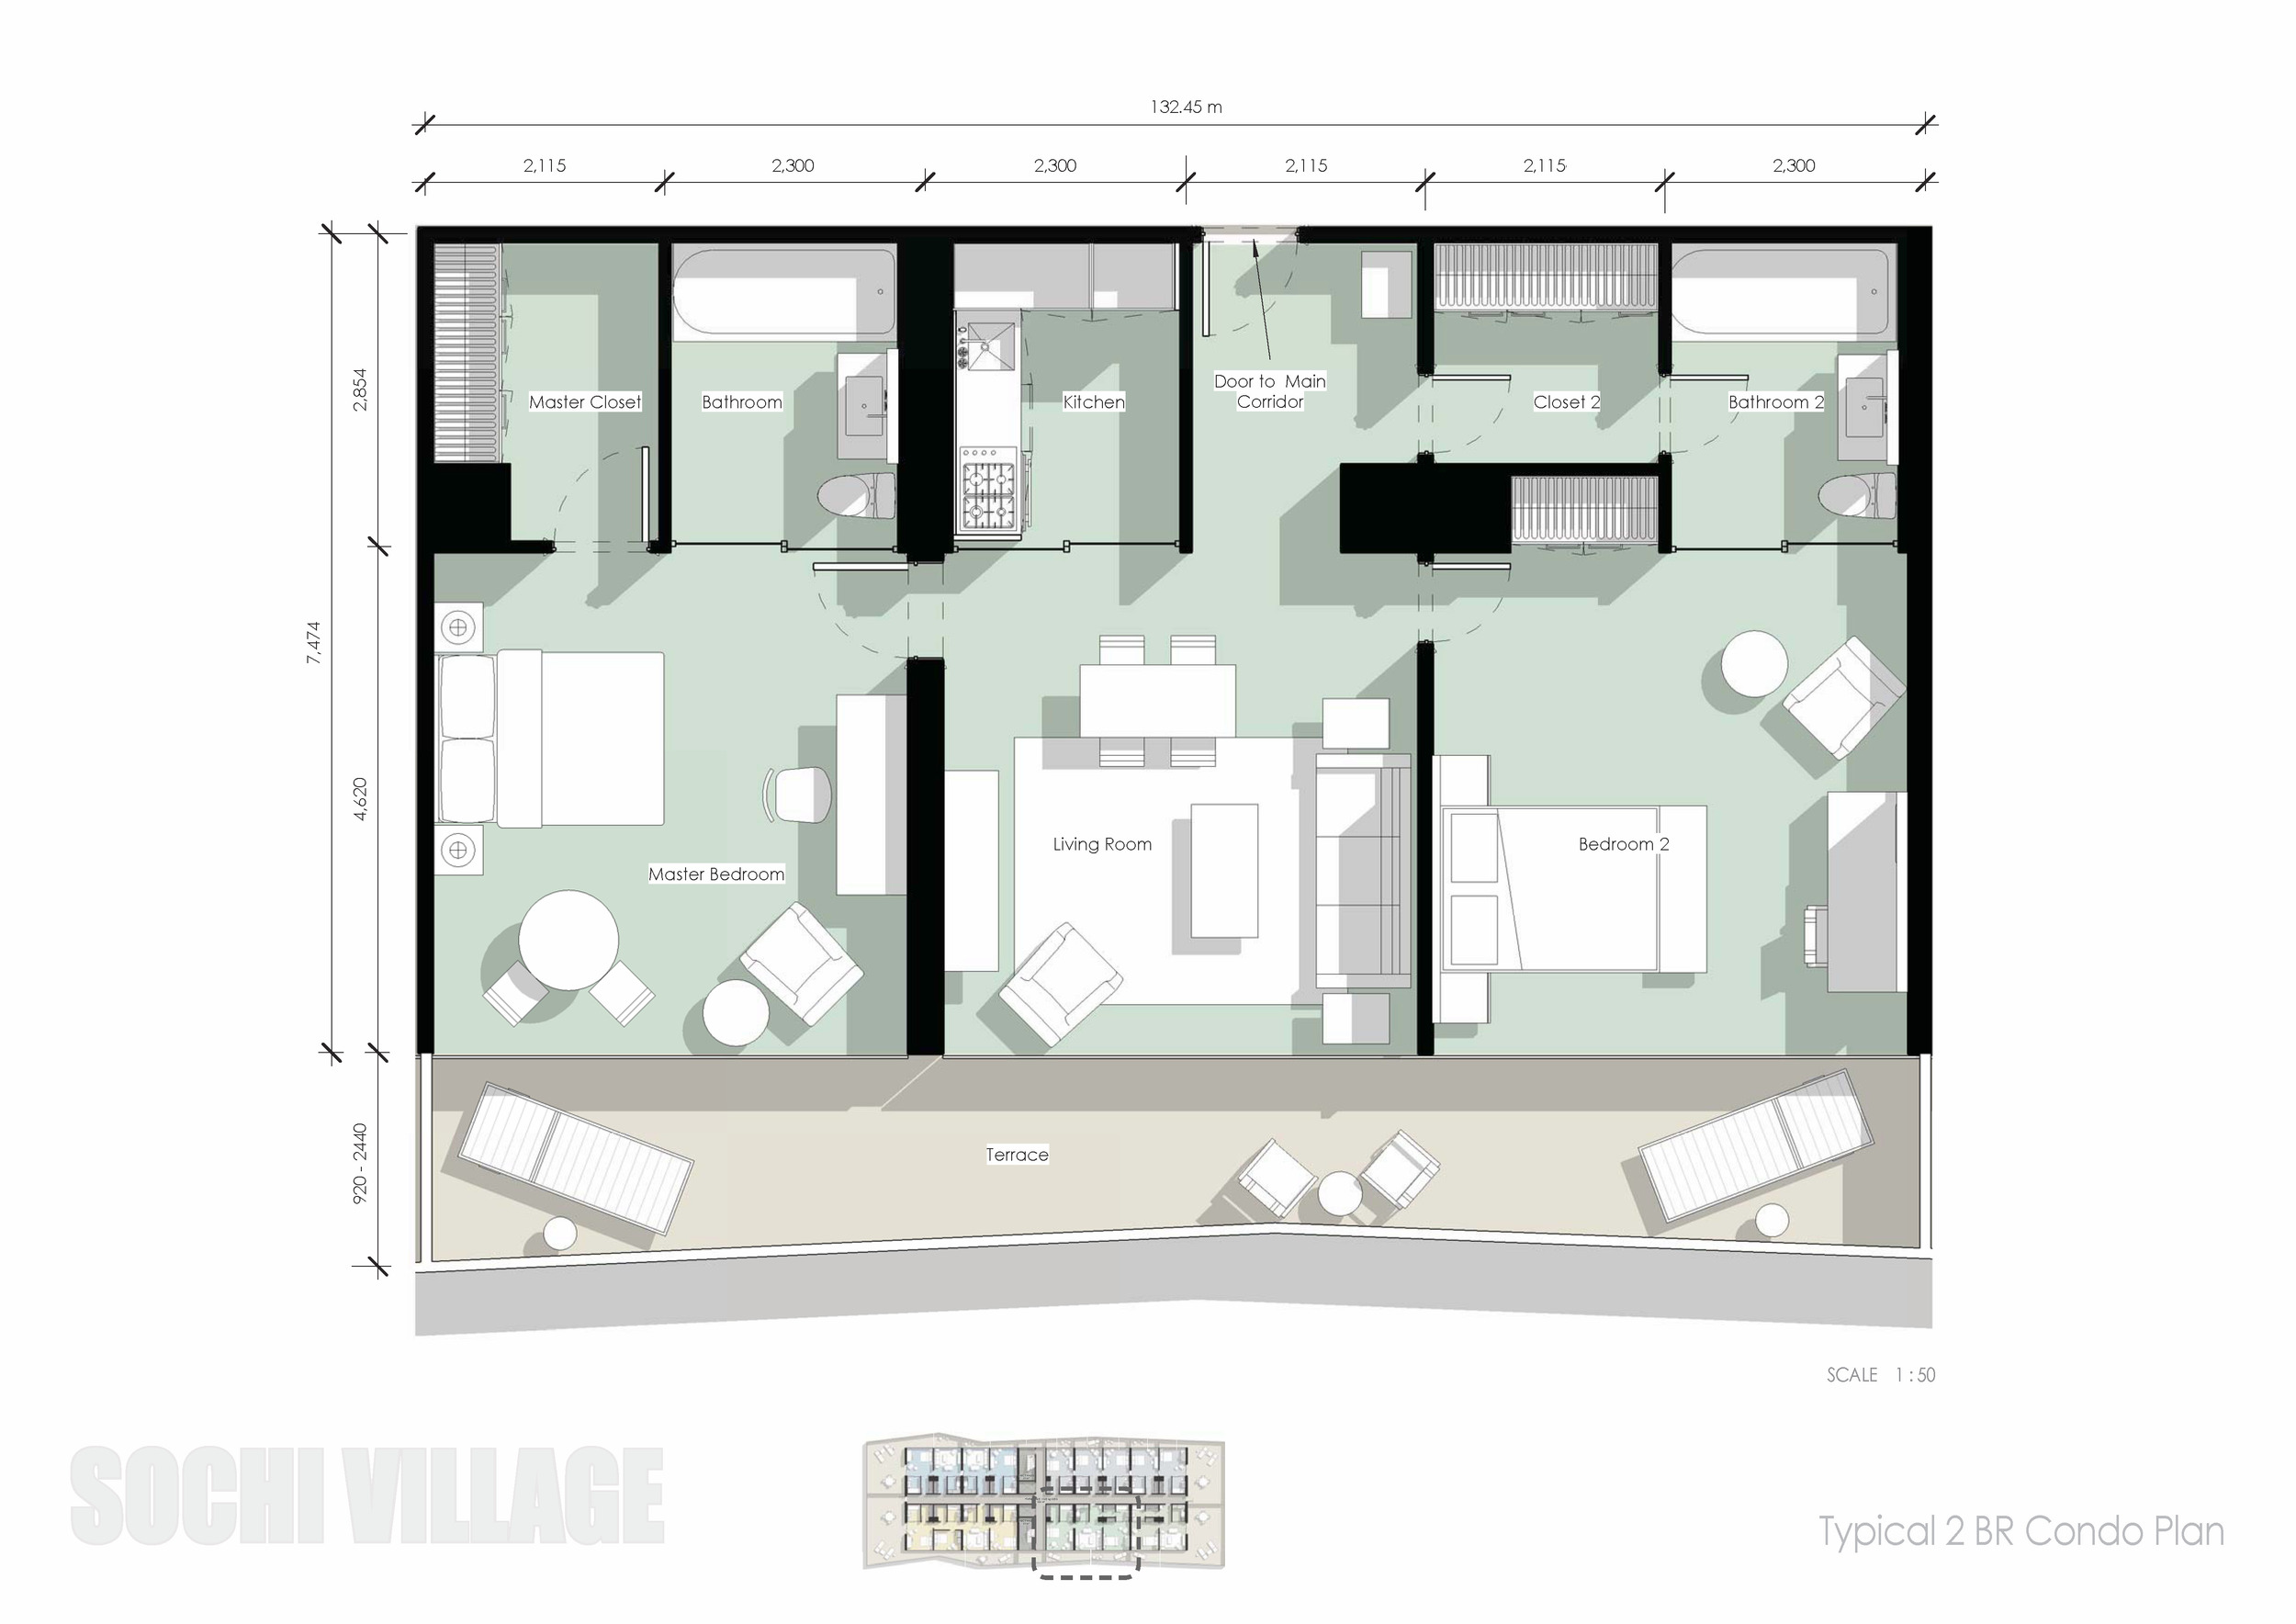 Sochi Olympic Village Typical 2 Bedroom Condo Plan